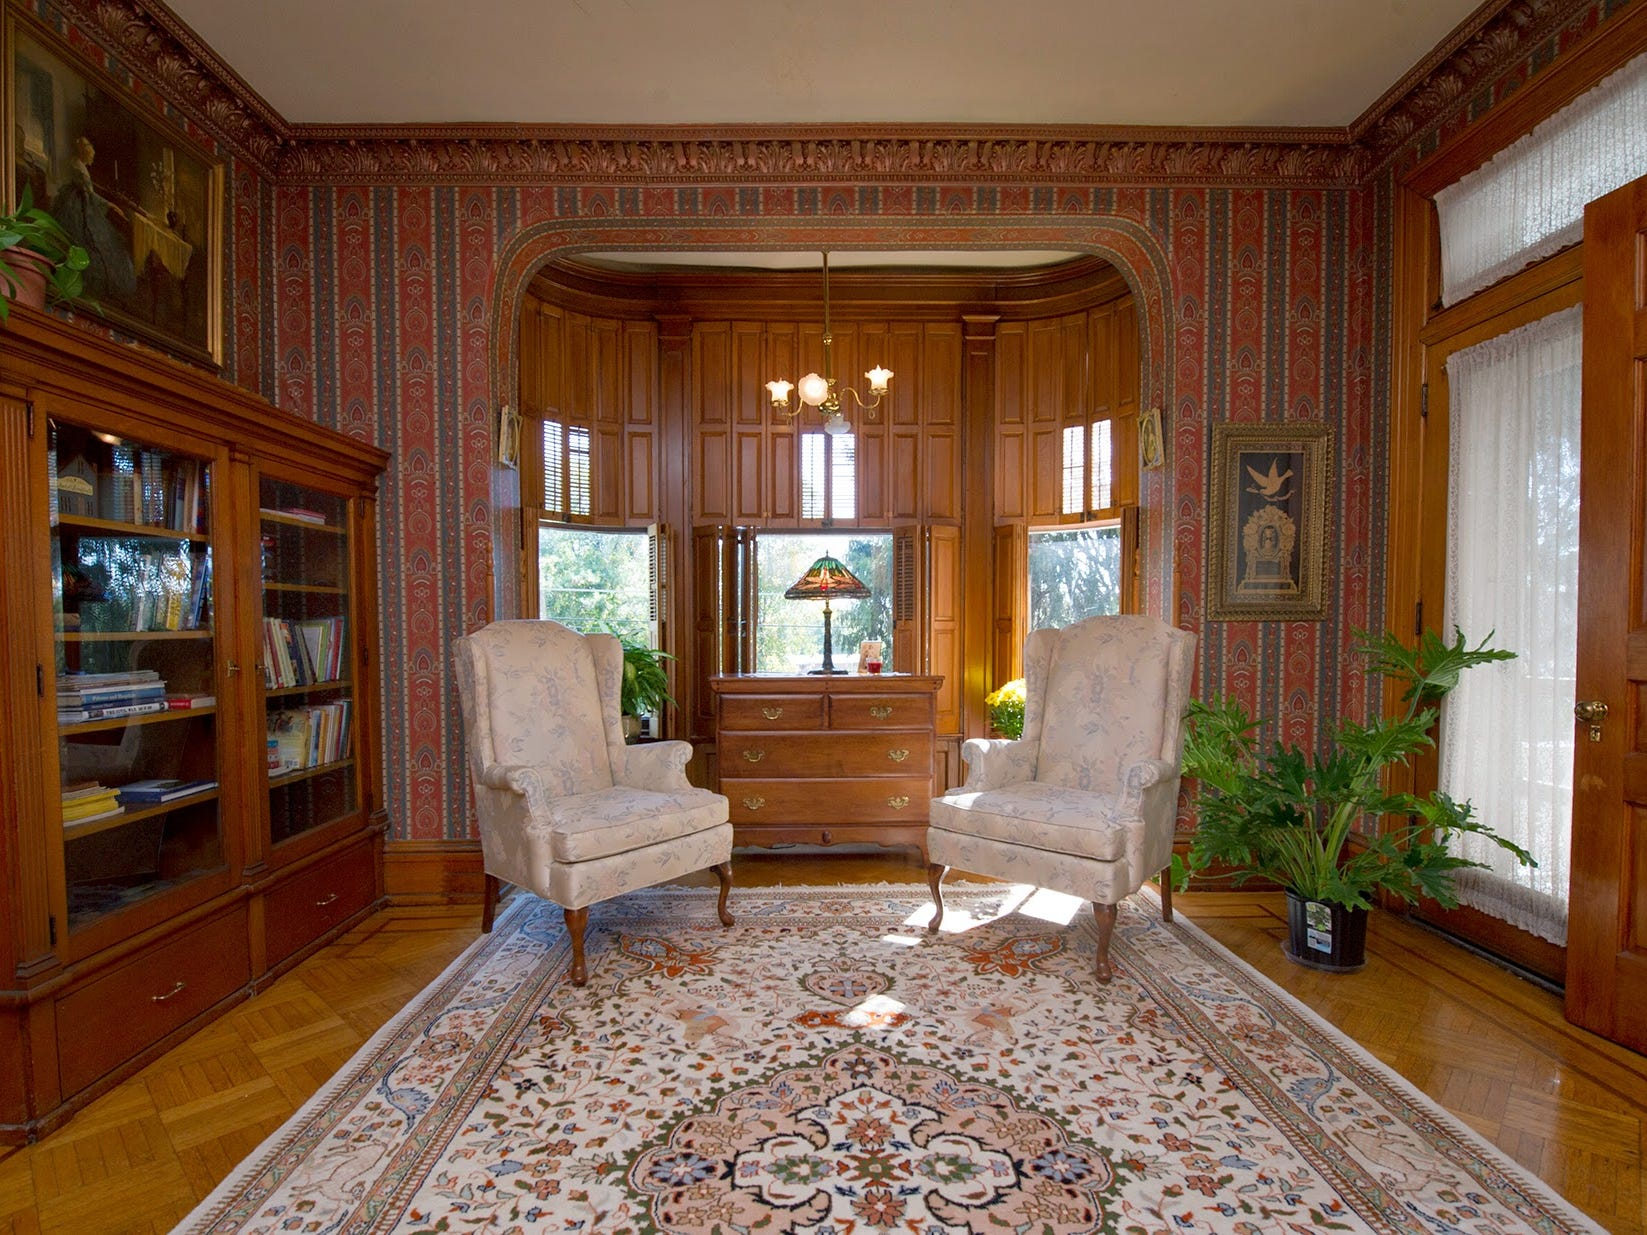 The library of the Emig Mansion as it appeared in September 2014.